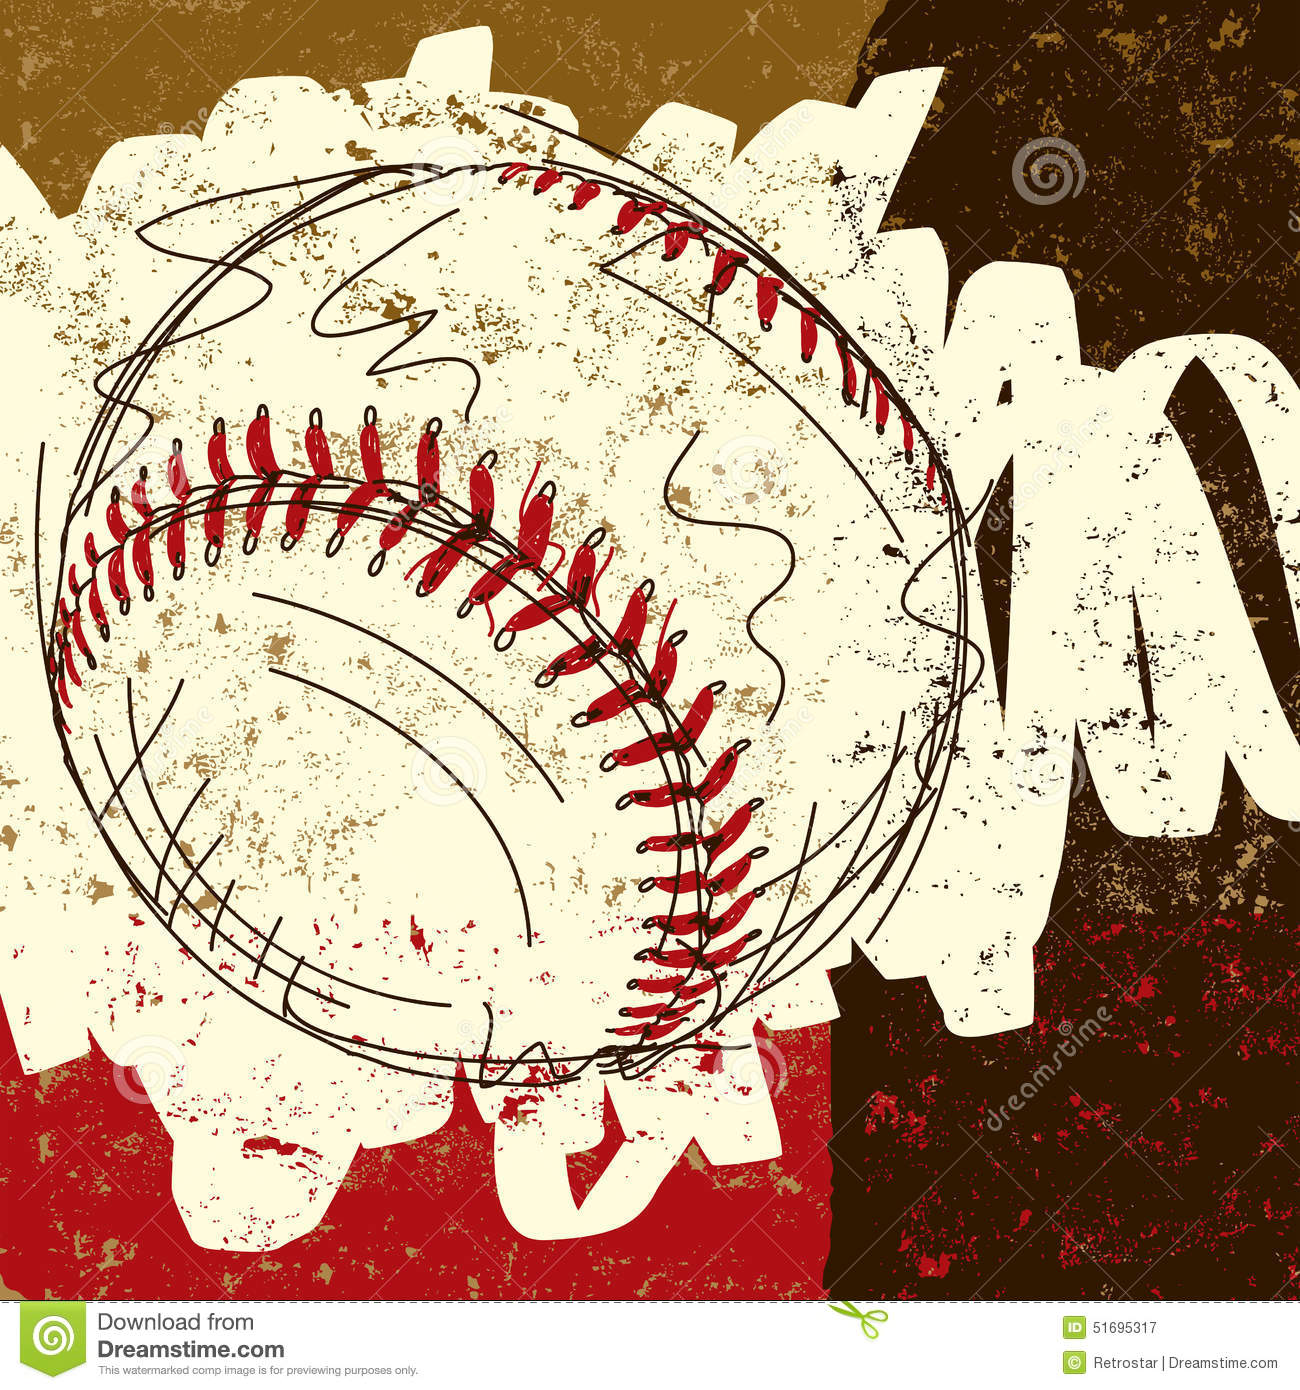 Distressedbaseball clipart graphic royalty free download Distressed Baseball Script With A Baseball #41348 - Clipartimage.com graphic royalty free download